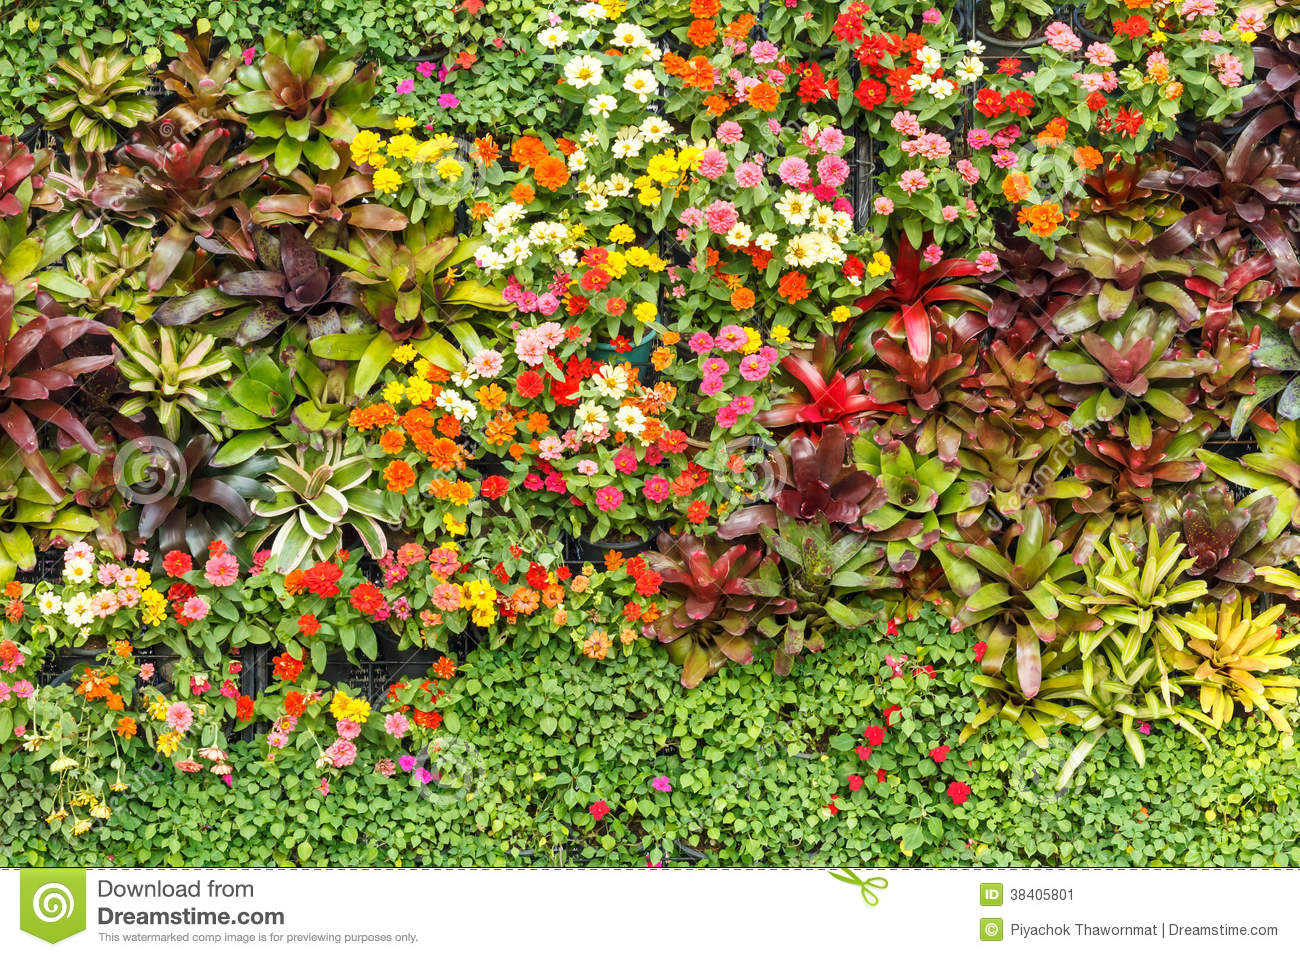 Abstract nature background wall garden stock image for Flower wall garden